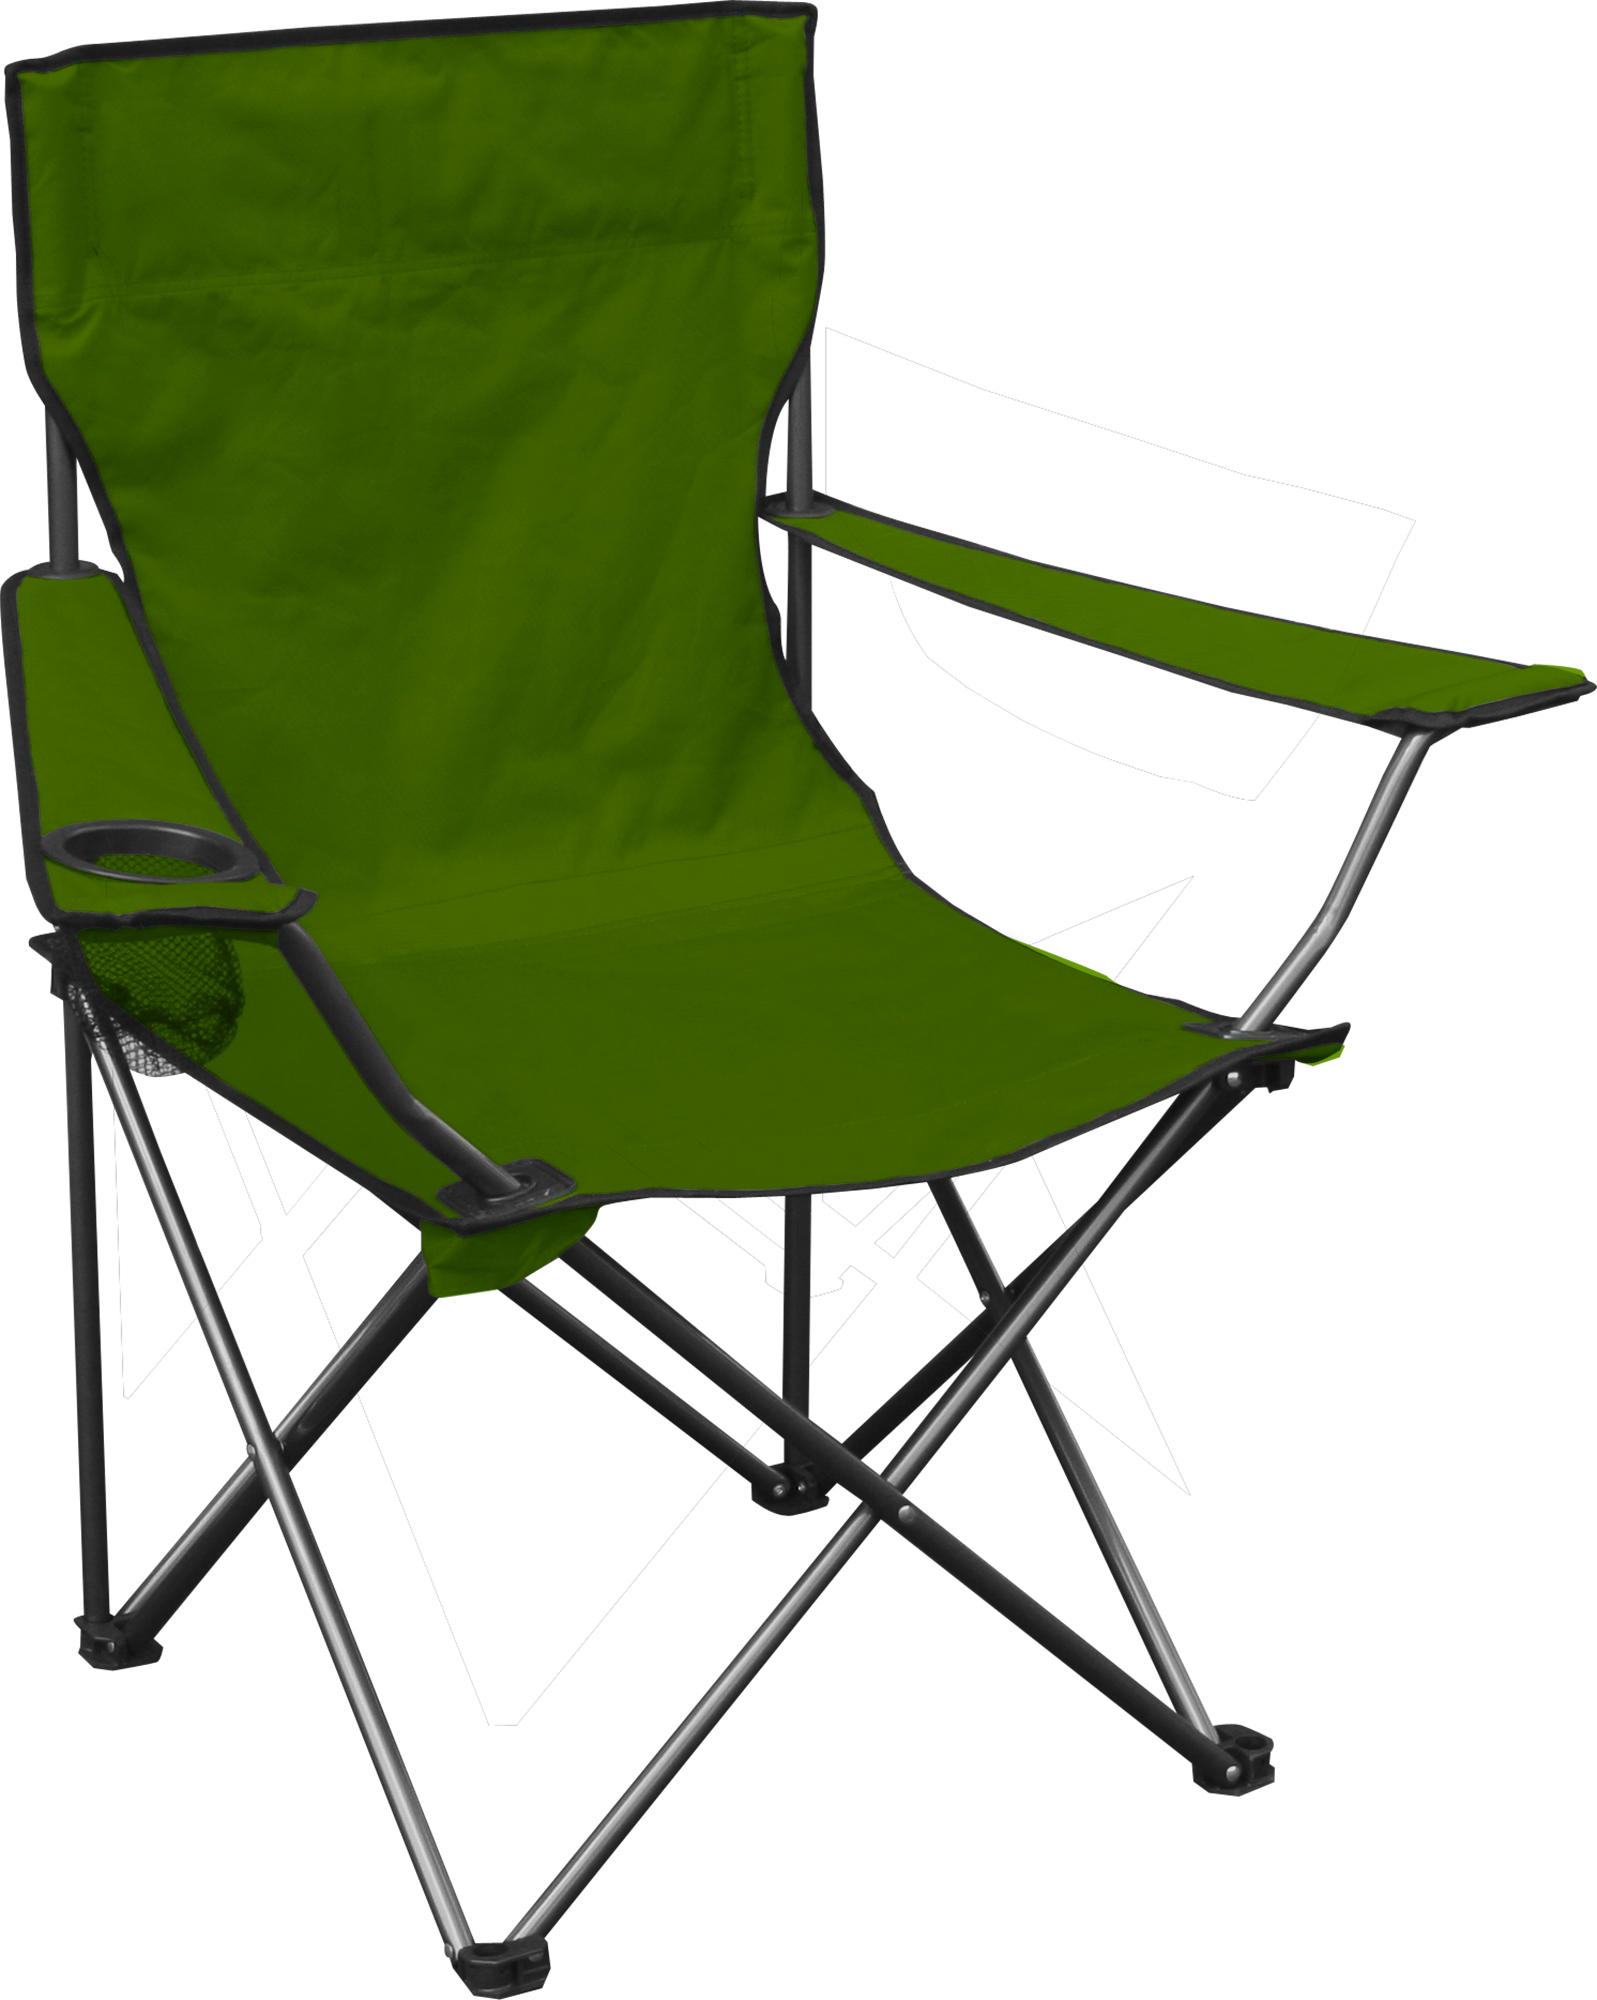 Quad Chair, Green Fabric, Silver Frame